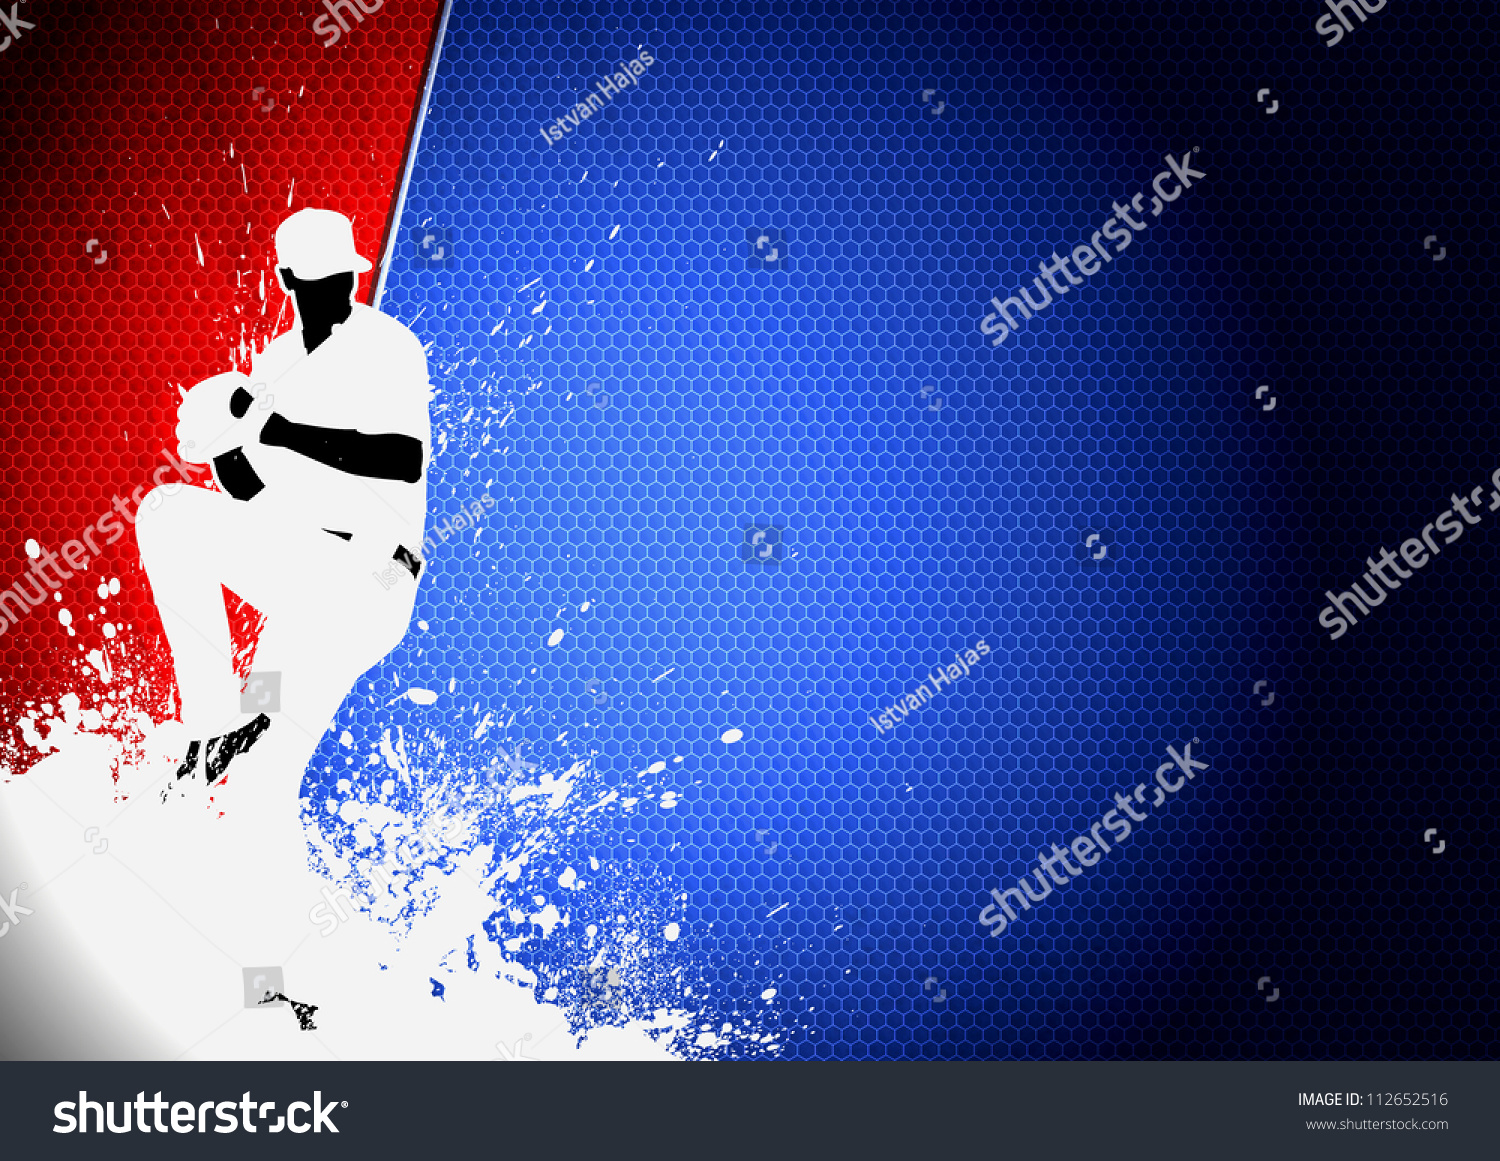 More About Music Poster Background High Resolution Update: Sport Poster: Baseball Player Background With Space Stock